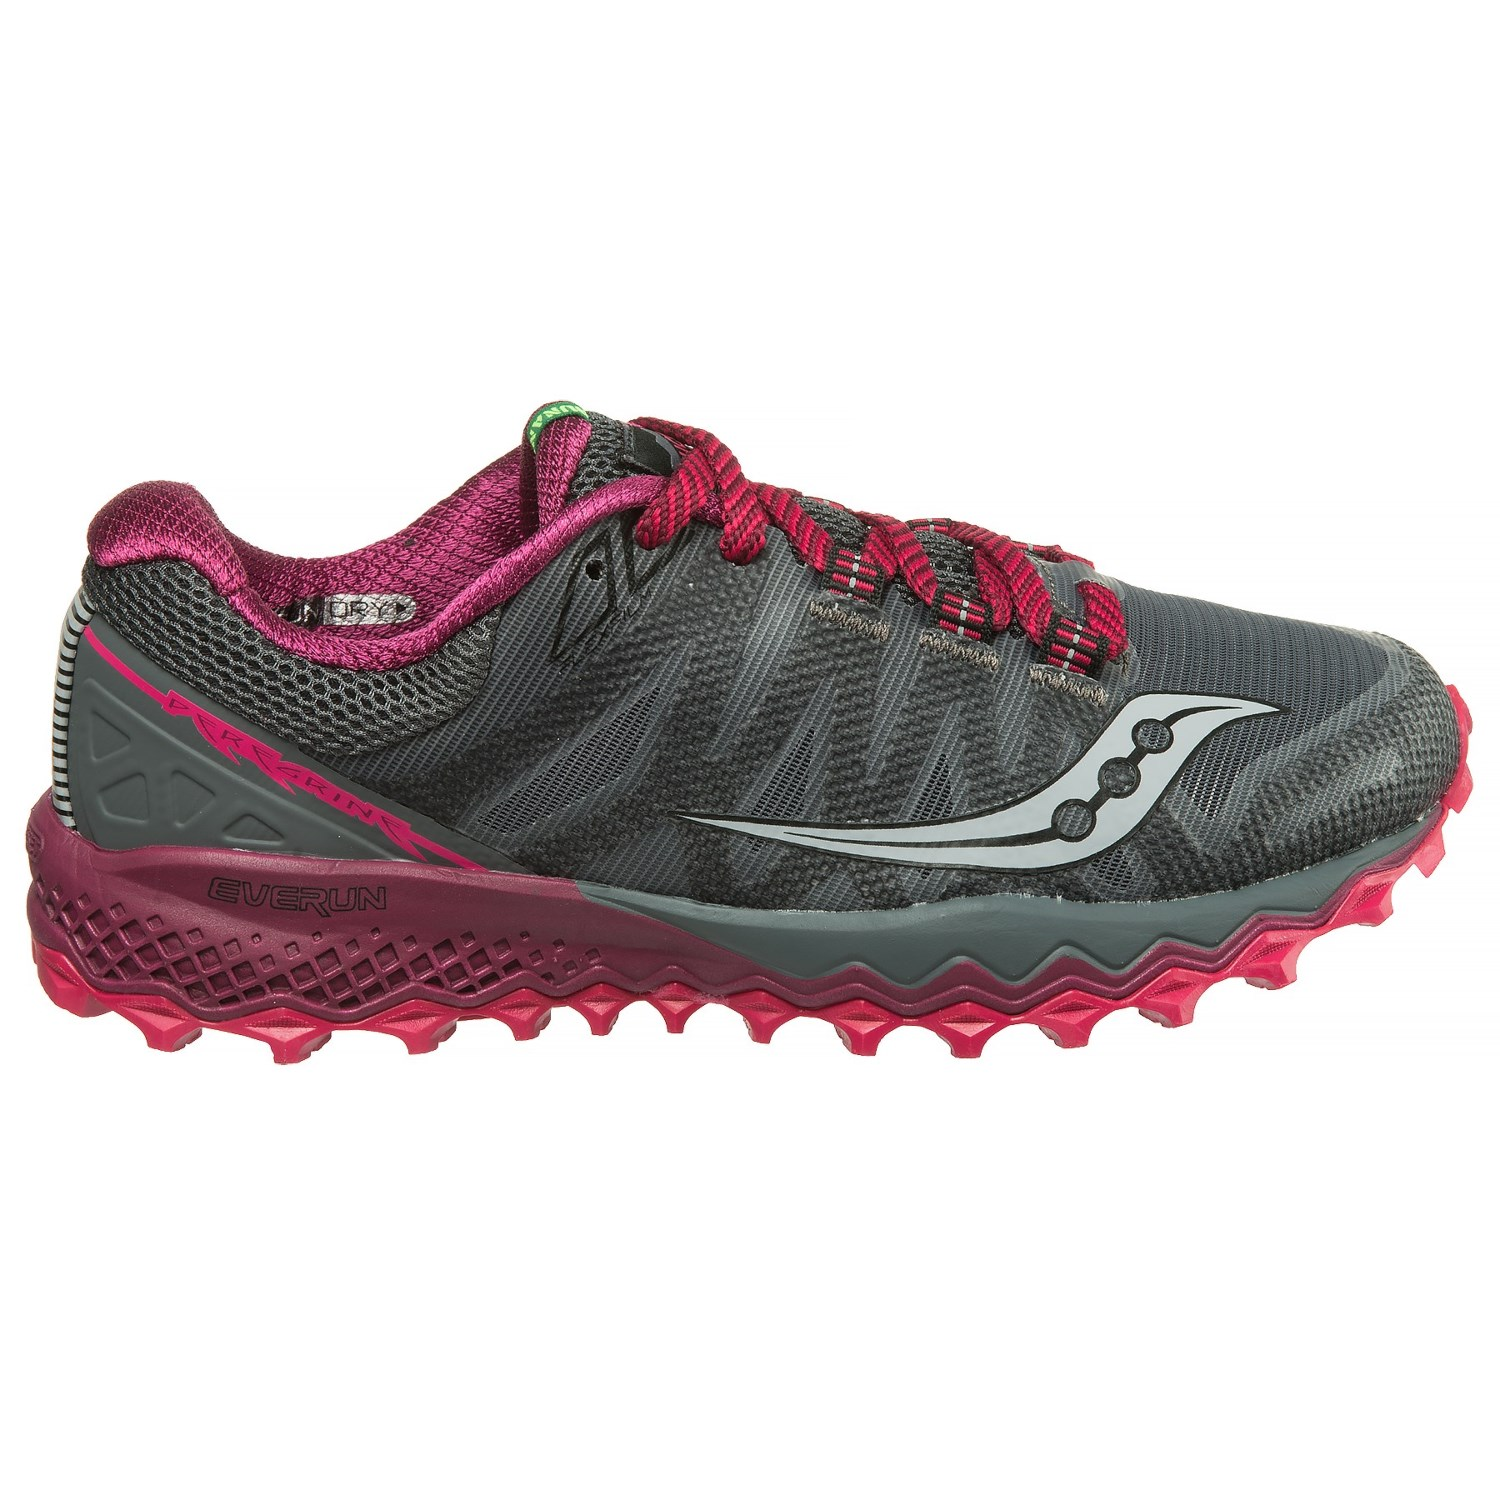 ce43867abdb8 Saucony Peregrine 7 Trail Running Shoes (For Women) - Save 81%